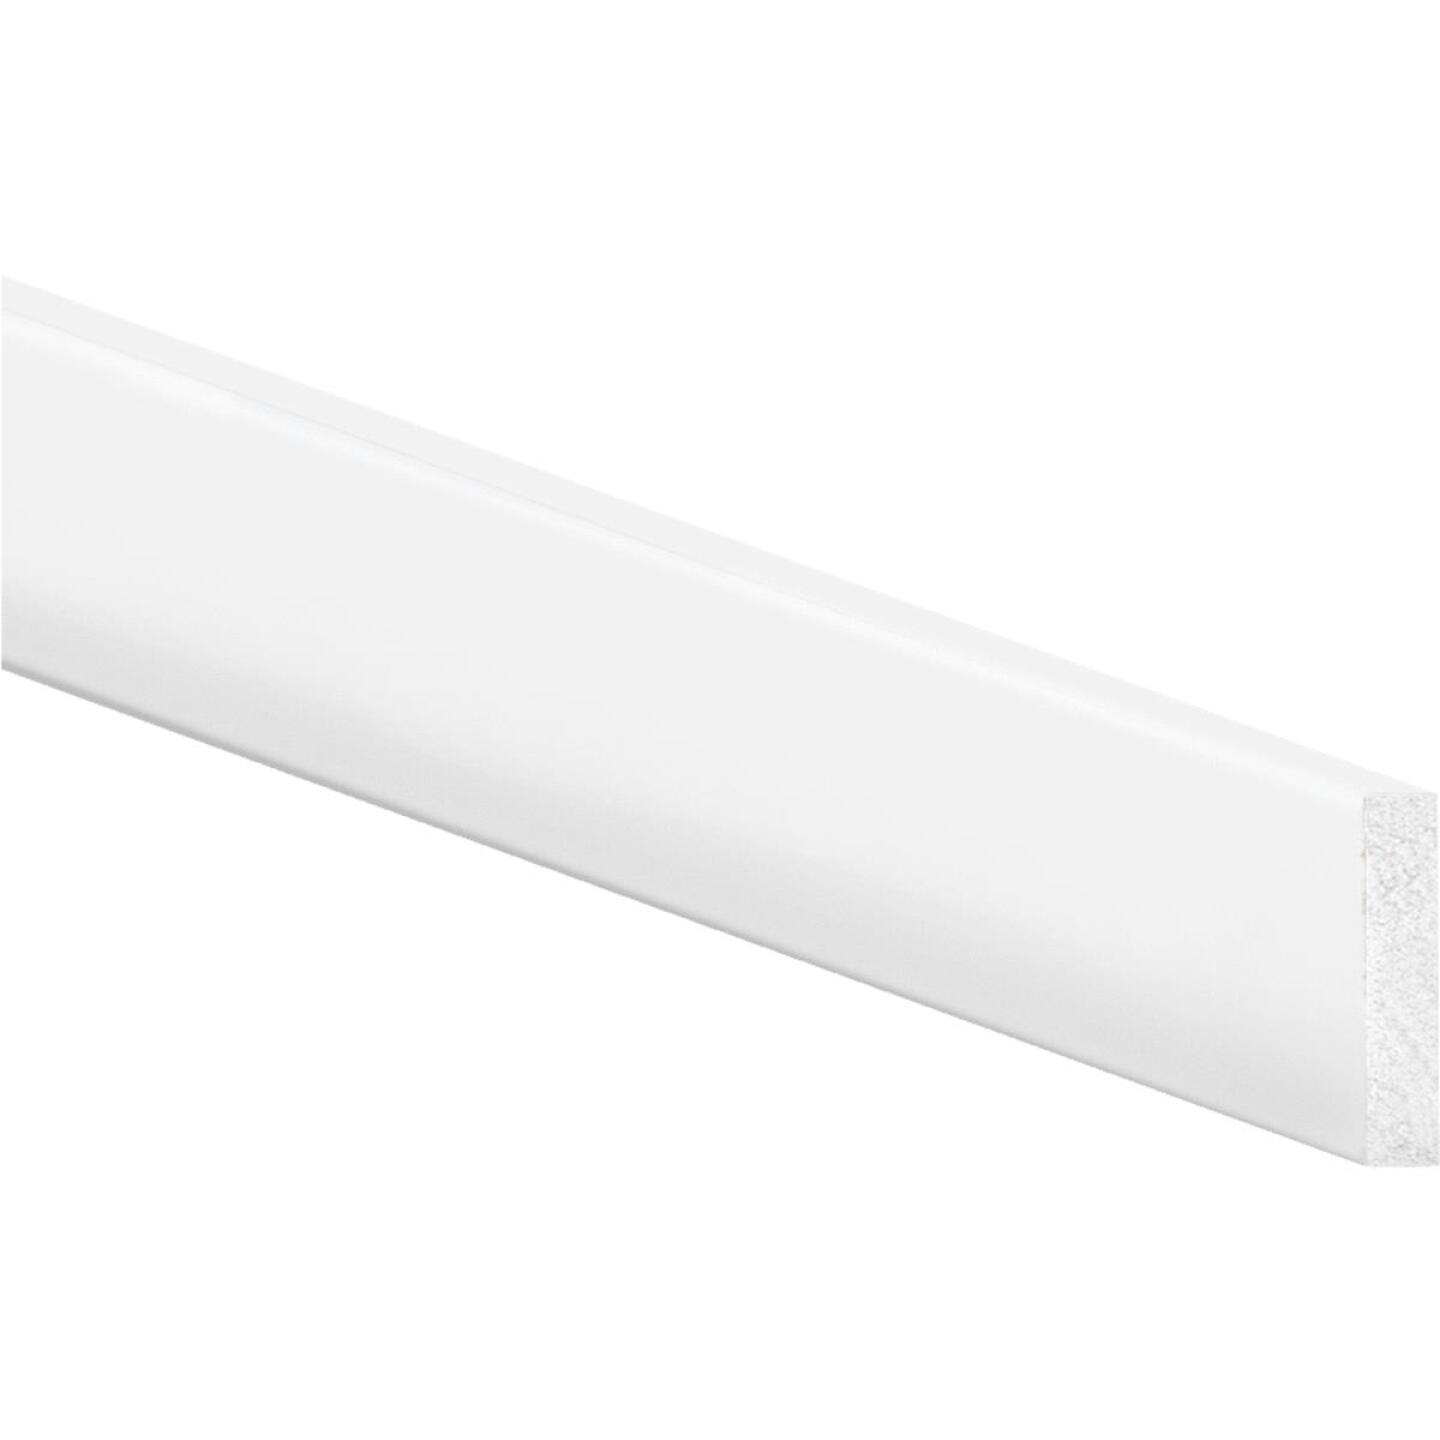 Inteplast Building Products 2-1/2 In. x 8 Ft. Crystal White Polystyrene Flat Molding Image 1